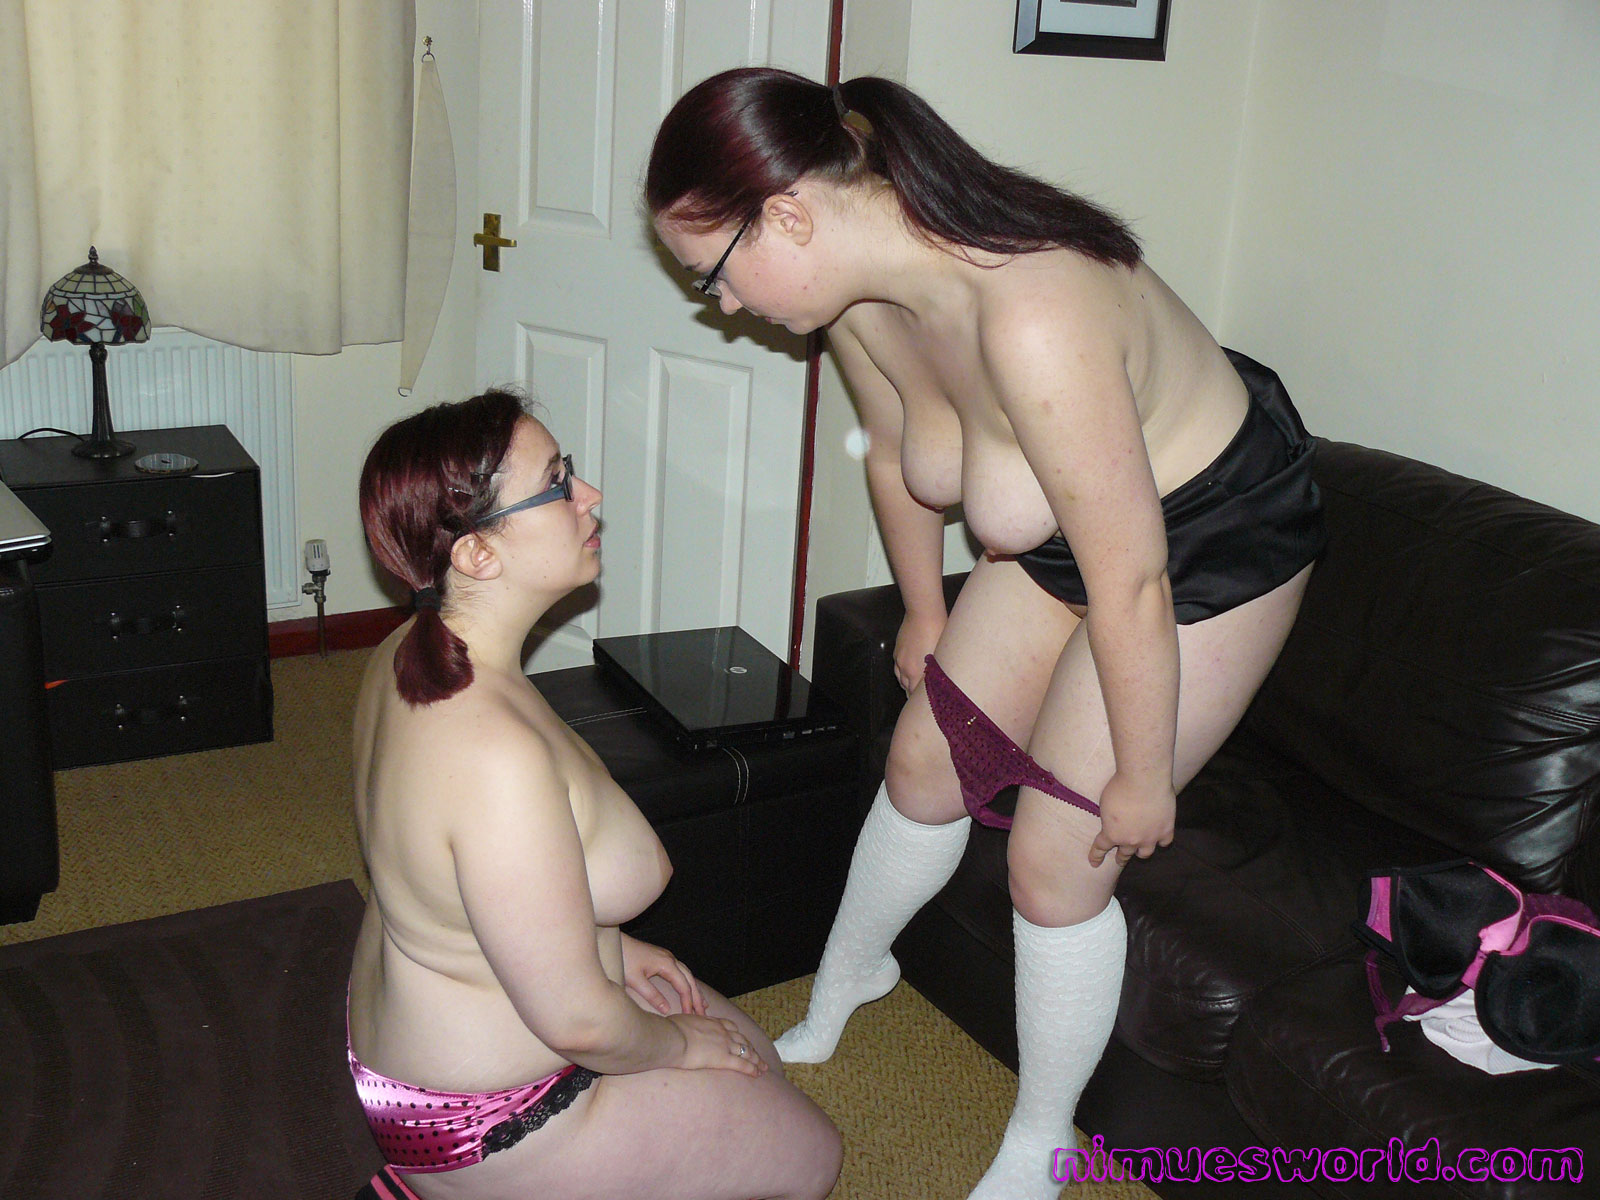 2 amateur lesbian girlfriends share one cock with facial 1